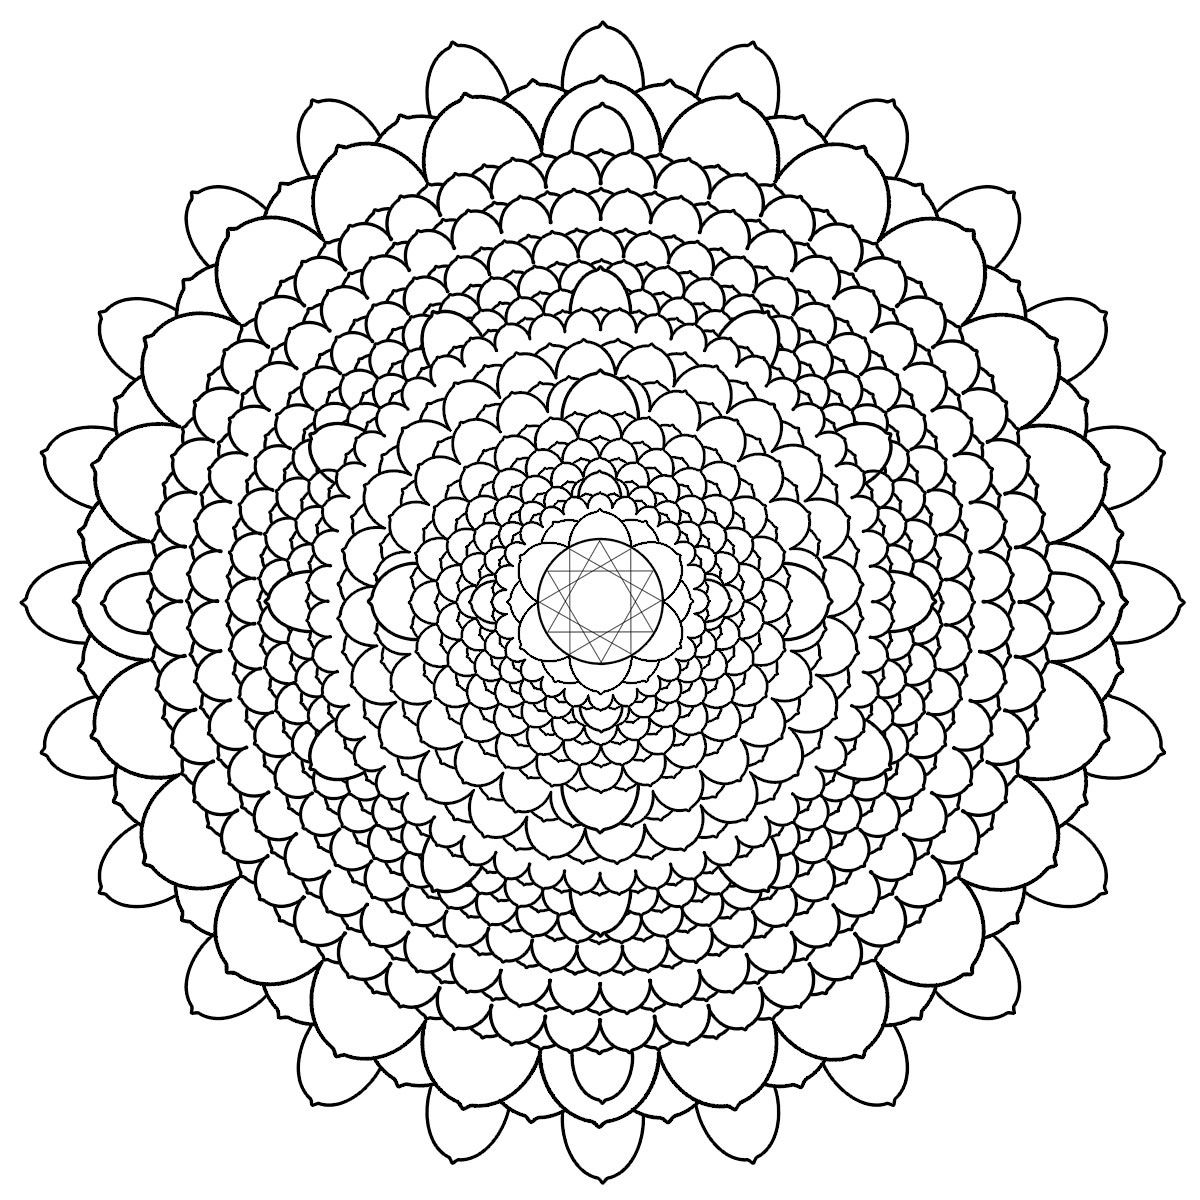 Mandala Coloring Pages On Pinterest. Free Printable Mandalas for Adults  Difficult mandala coloring pages